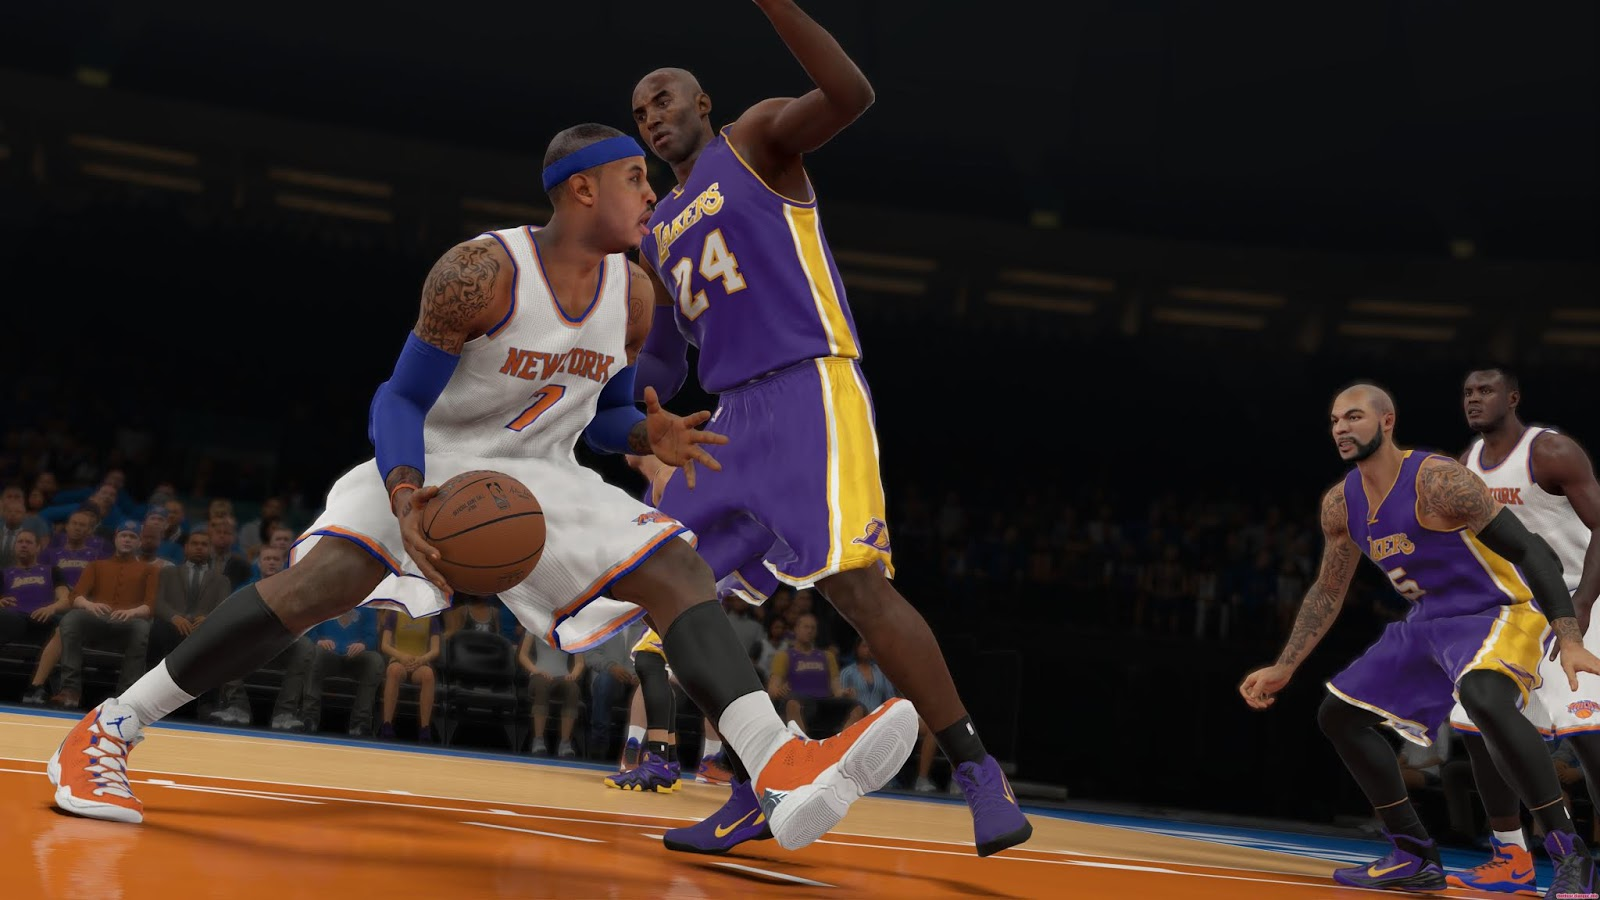 NBA 2k15, NBA 2k15 free download, game bóng rổ pc, Tải game NBA 2K15 miễn phí